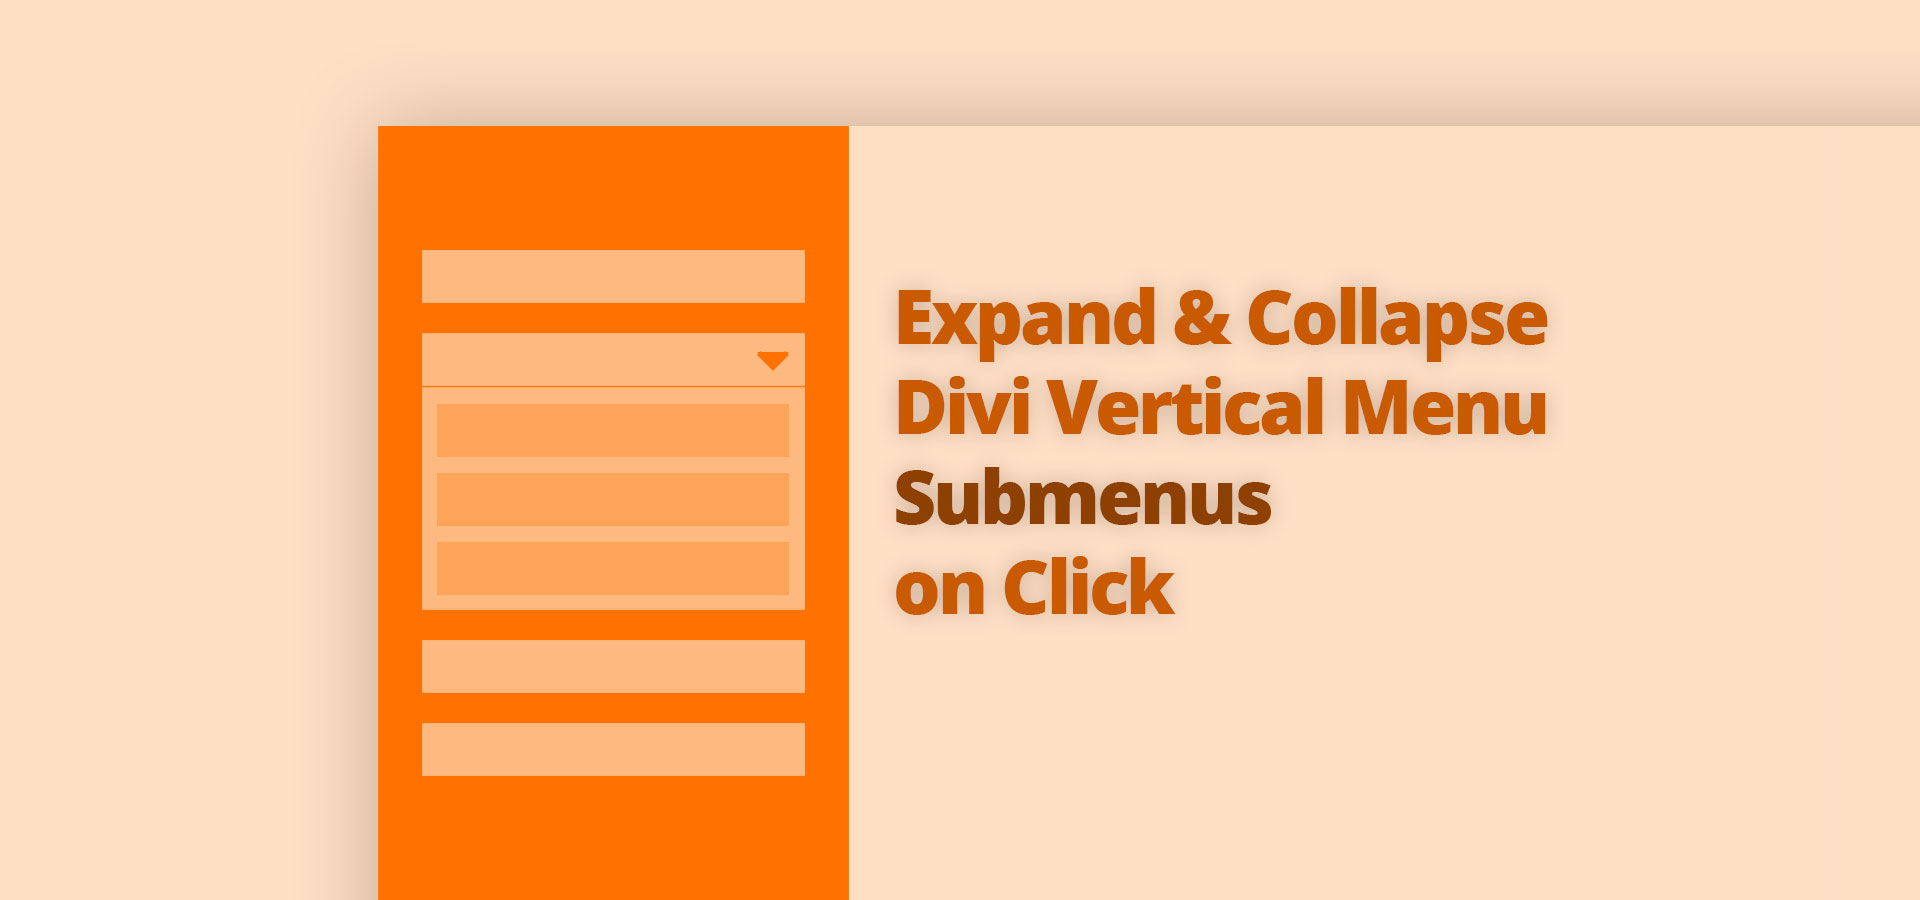 Expand and Collapse Divi Vertical Menu Submenus on Click